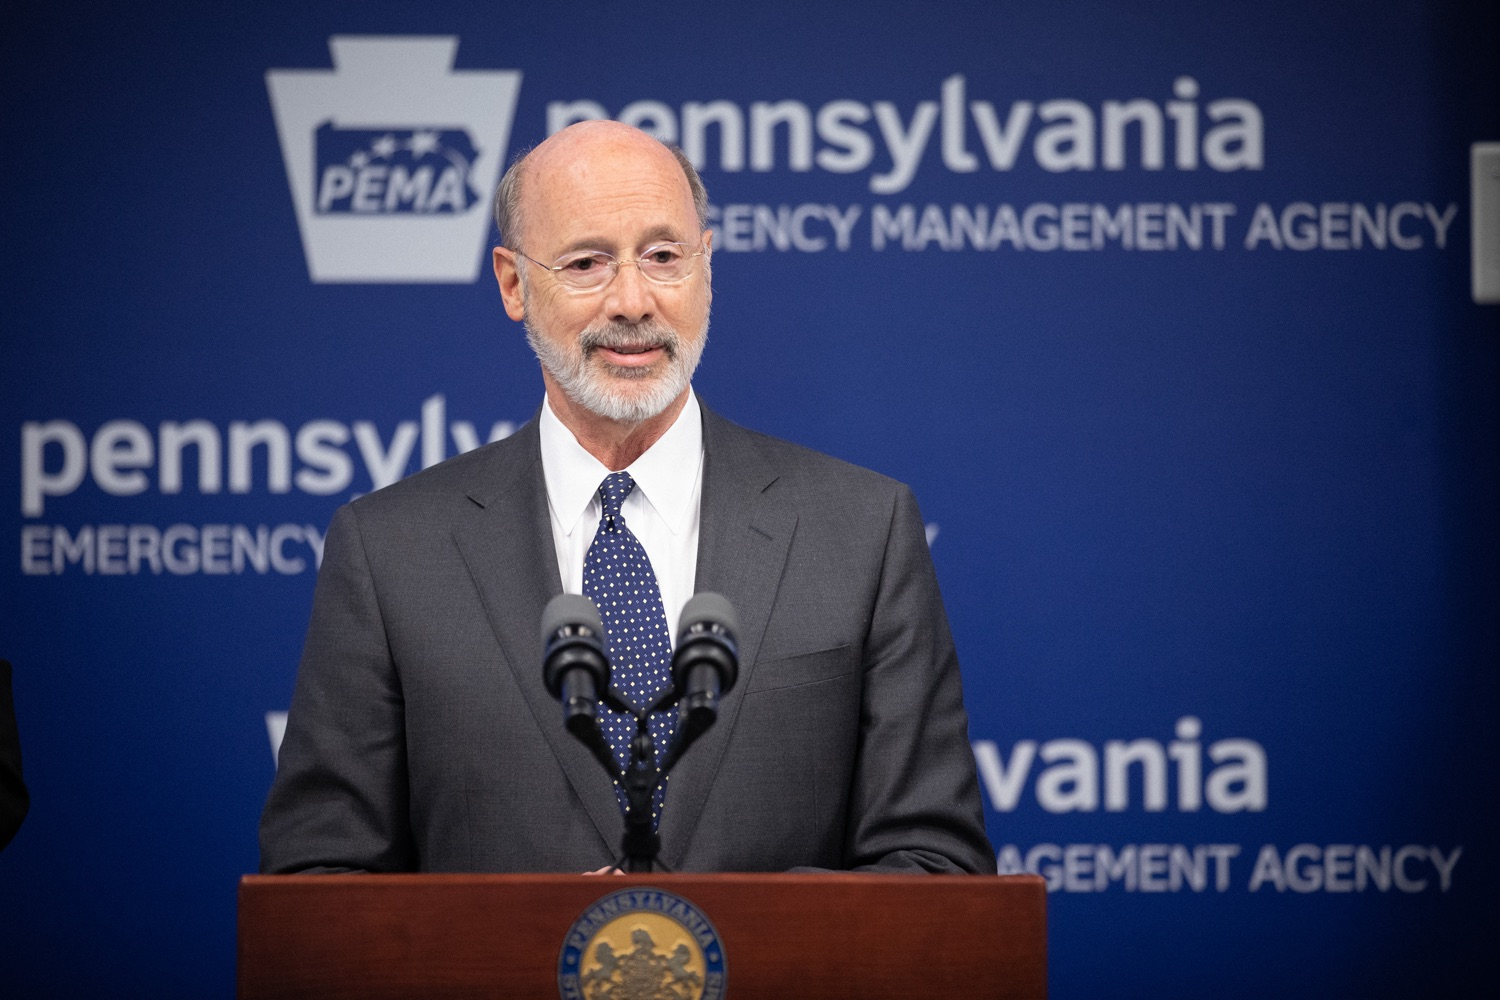 """<a href=""""https://filesource.wostreaming.net/commonwealthofpa/photo/17888_gov_covid19_update_dz_0010.jpg"""" target=""""_blank"""">⇣Download Photo<br></a>Governor Tom Wolf  speaking to reporters. Governor Tom Wolf and Secretary of Health Dr. Rachel Levine provided an update on the coronavirus known as COVID-19 and outline ongoing efforts to mitigate the virus in Pennsylvania. The Department of Health anticipates that there will be more Pennsylvanians who test positive for COVID-19 in the coming days and weeks and it is important for residents to know the commonwealth is prepared and to be prepared themselves. People have a higher chance of testing positive for COVID-19 if they have traveled to a country or state with known community outbreaks or have come in contact with someone who has the virus. The Wolf Administration is working with the health care community across Pennsylvania to keep them informed, consult on patient testing, and ensure they have the resources they need to care for patients. .March 16, 2020  Harrisburg Pa."""